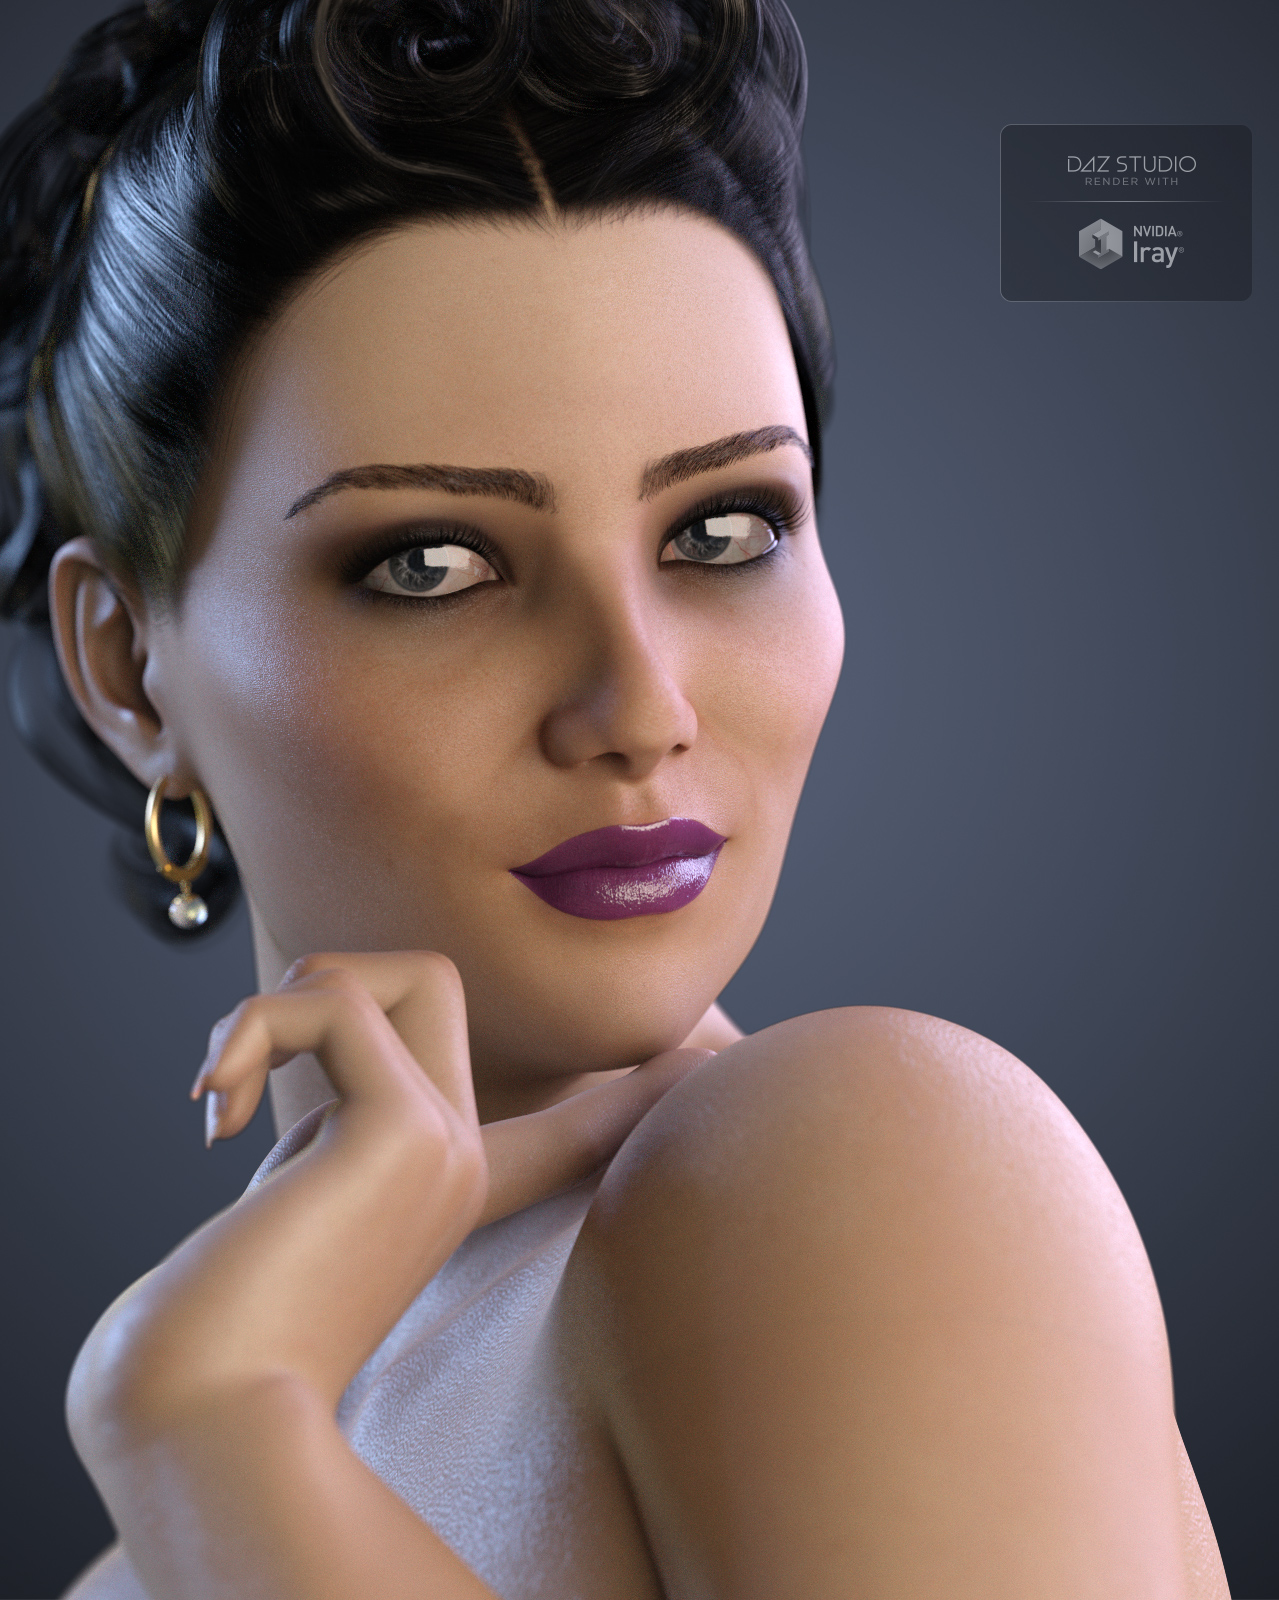 SublimelyVexed Khouri for G8F by 3DSublimeProductions